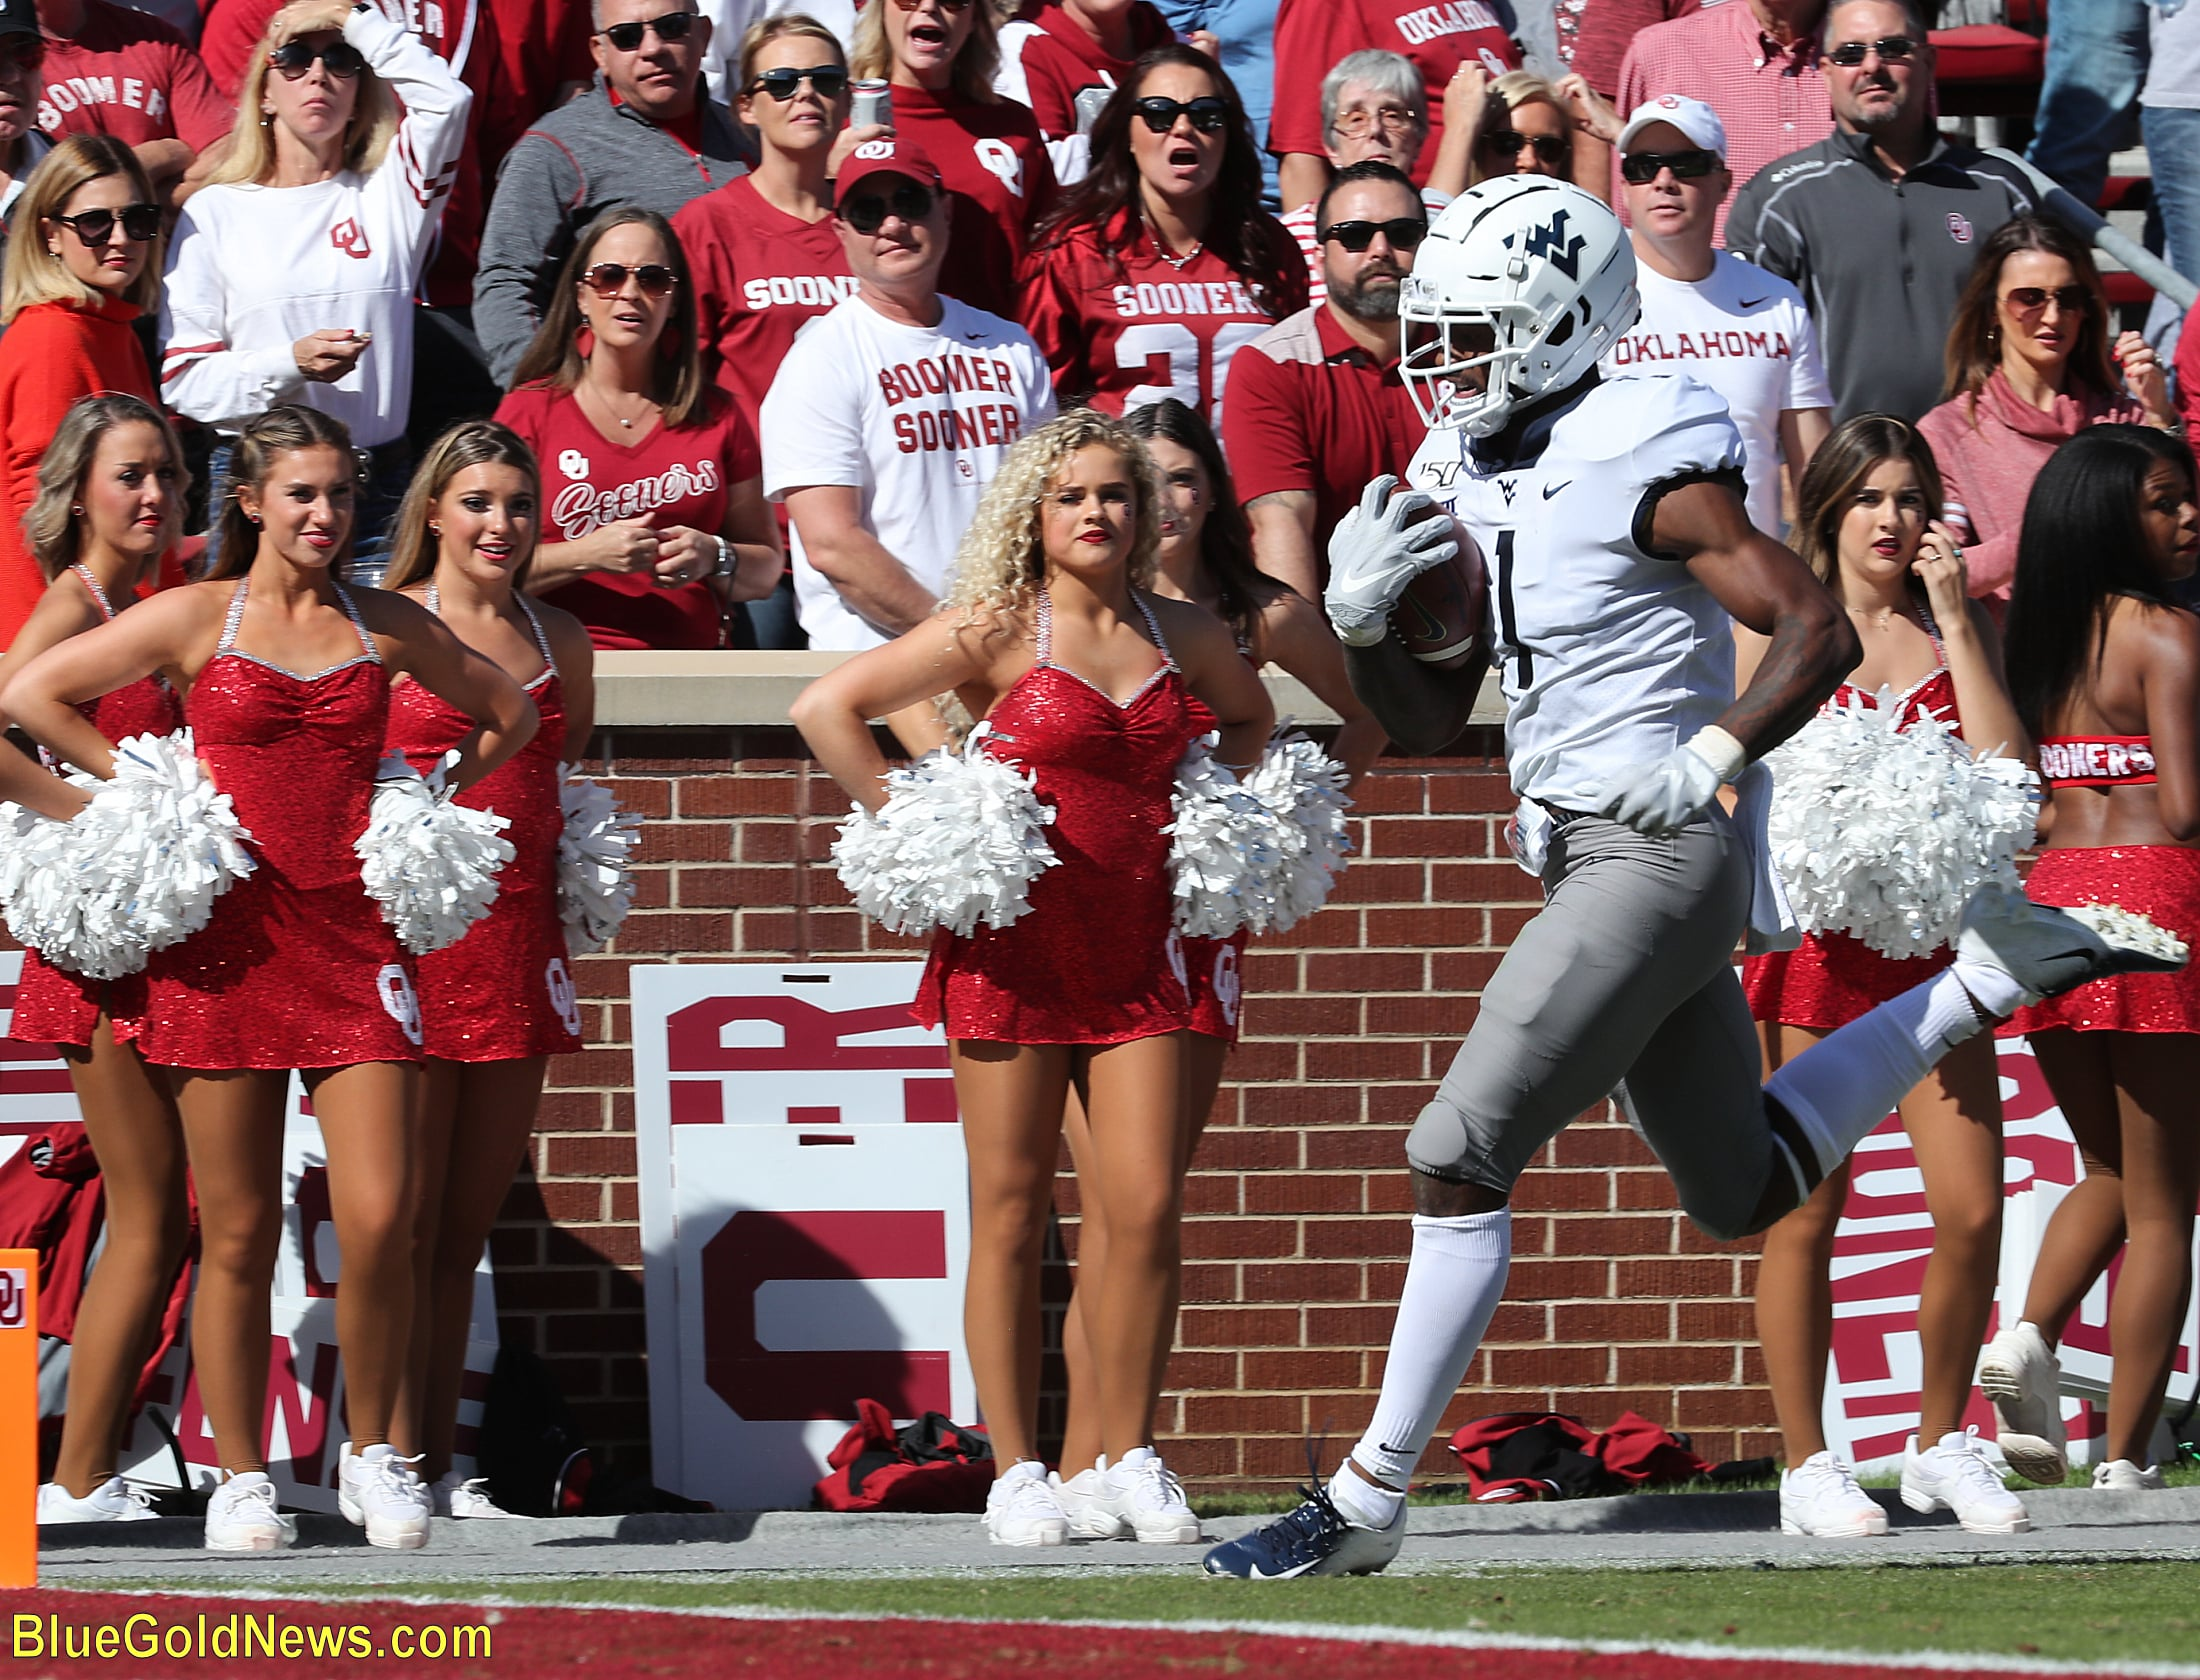 West Virginia receiver TJ Simmons scoots into the end zone in front of dismayed Oklahoma fans